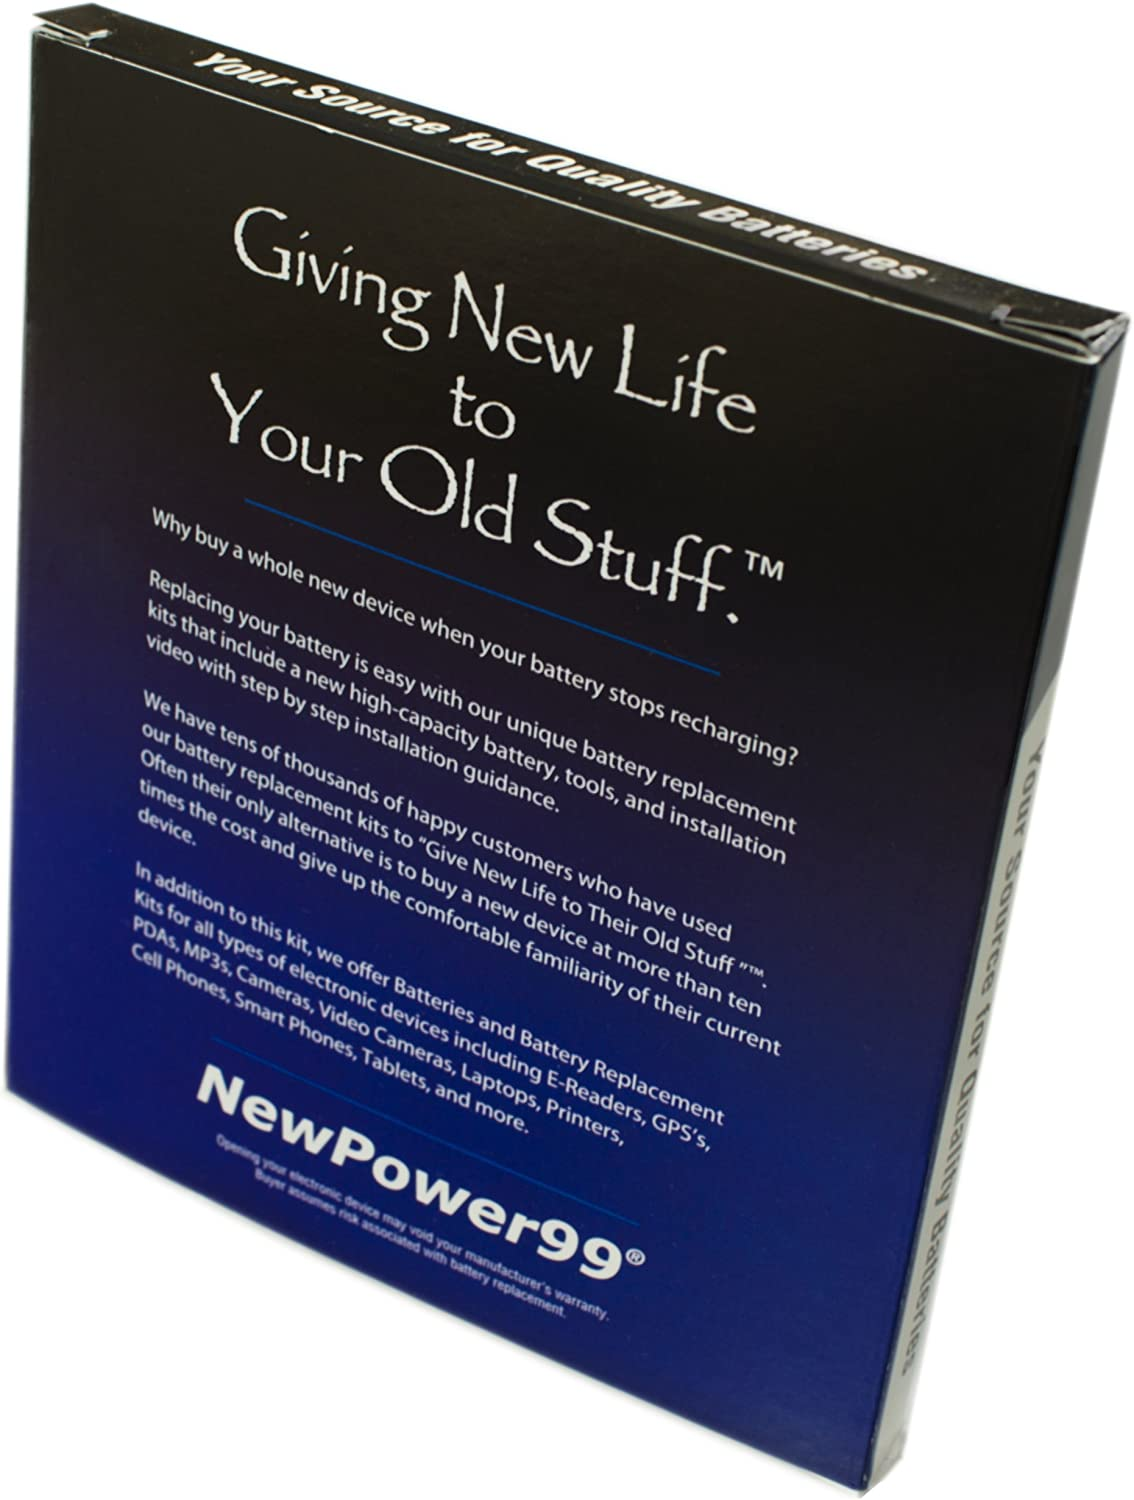 Tools and Extended Life Battery from NewPower99 Battery Kit for Garmin Drive 60LMT with Video Instructions